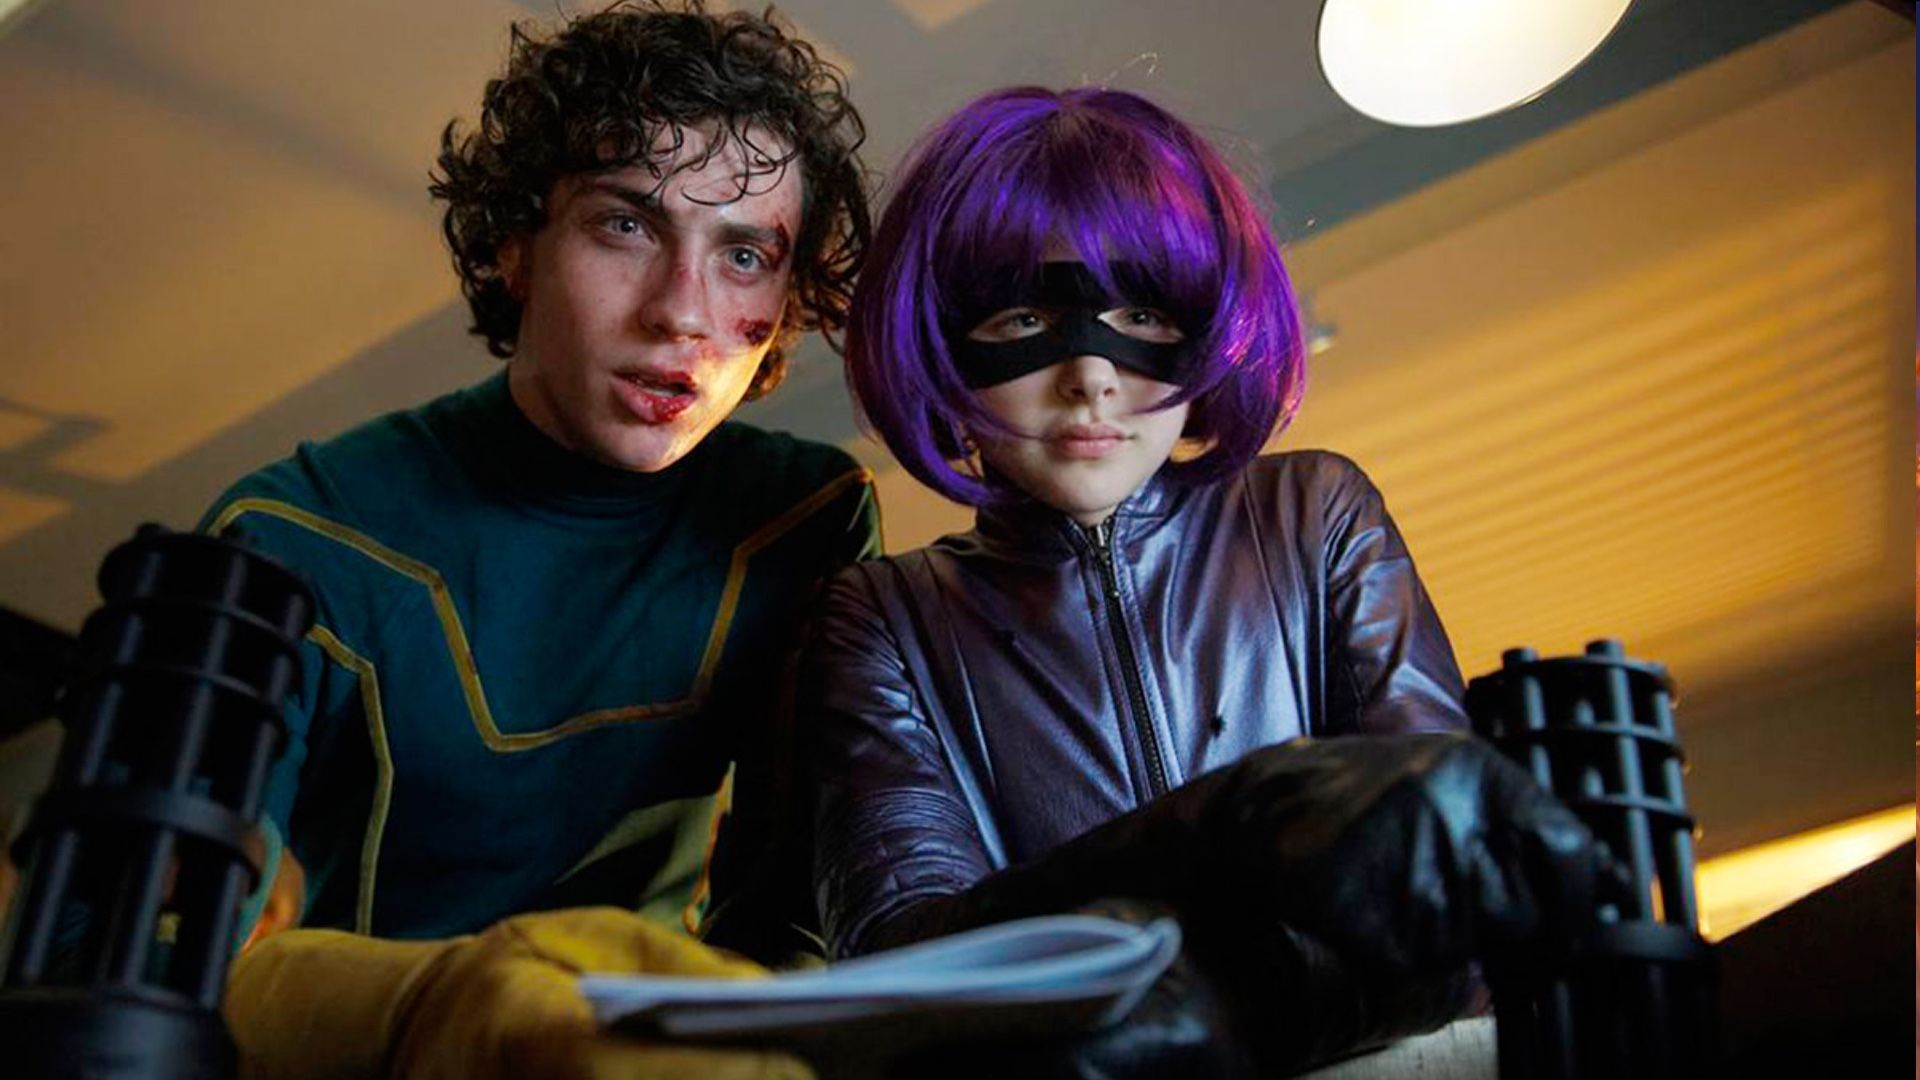 will-there-be-a-kick-ass-and-hit-girl-movie-announcement-soon-mark-millar-is-definitely-teasing-it-social